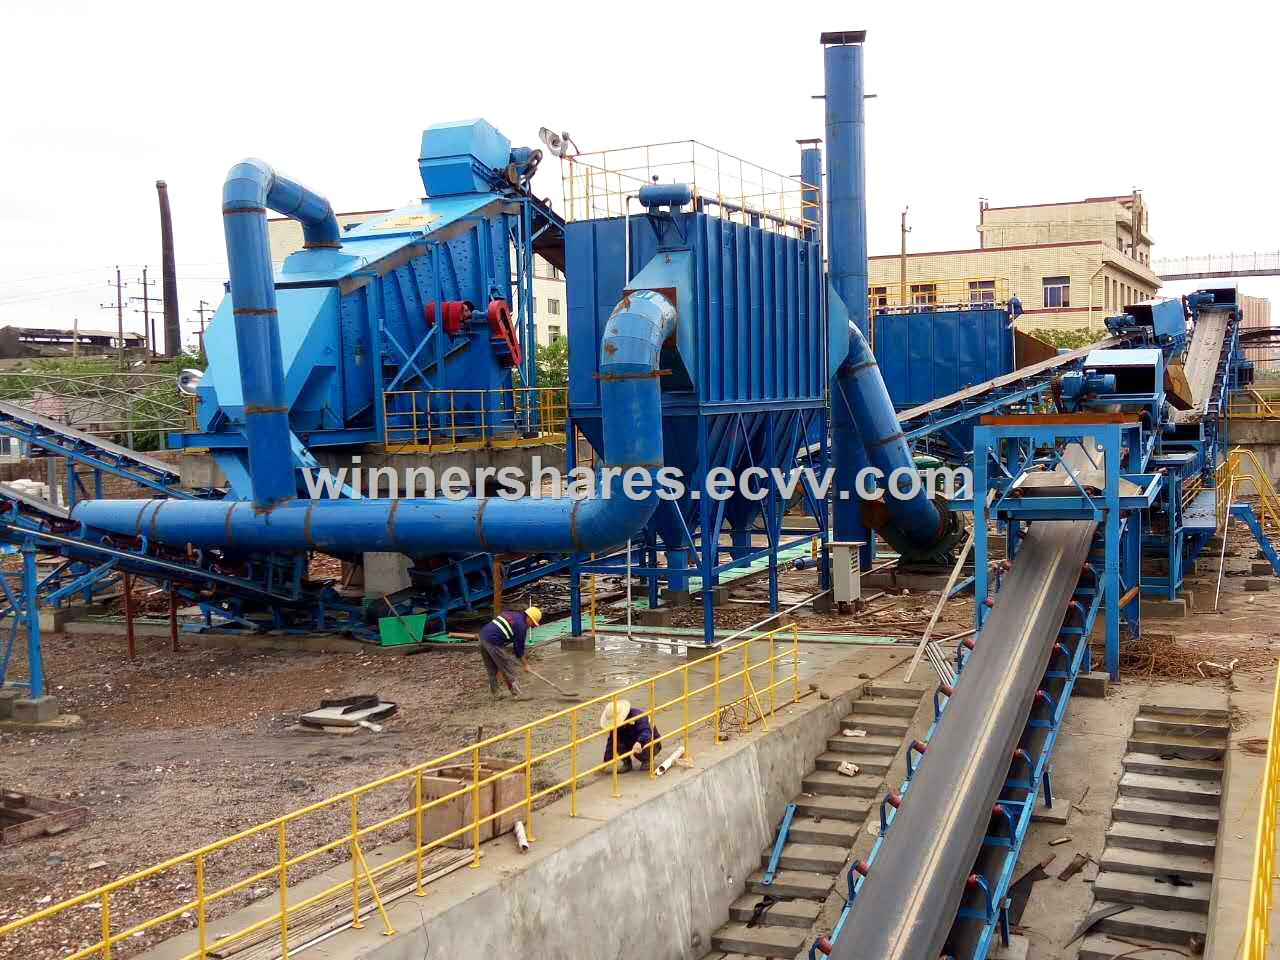 construction waste treatment system1